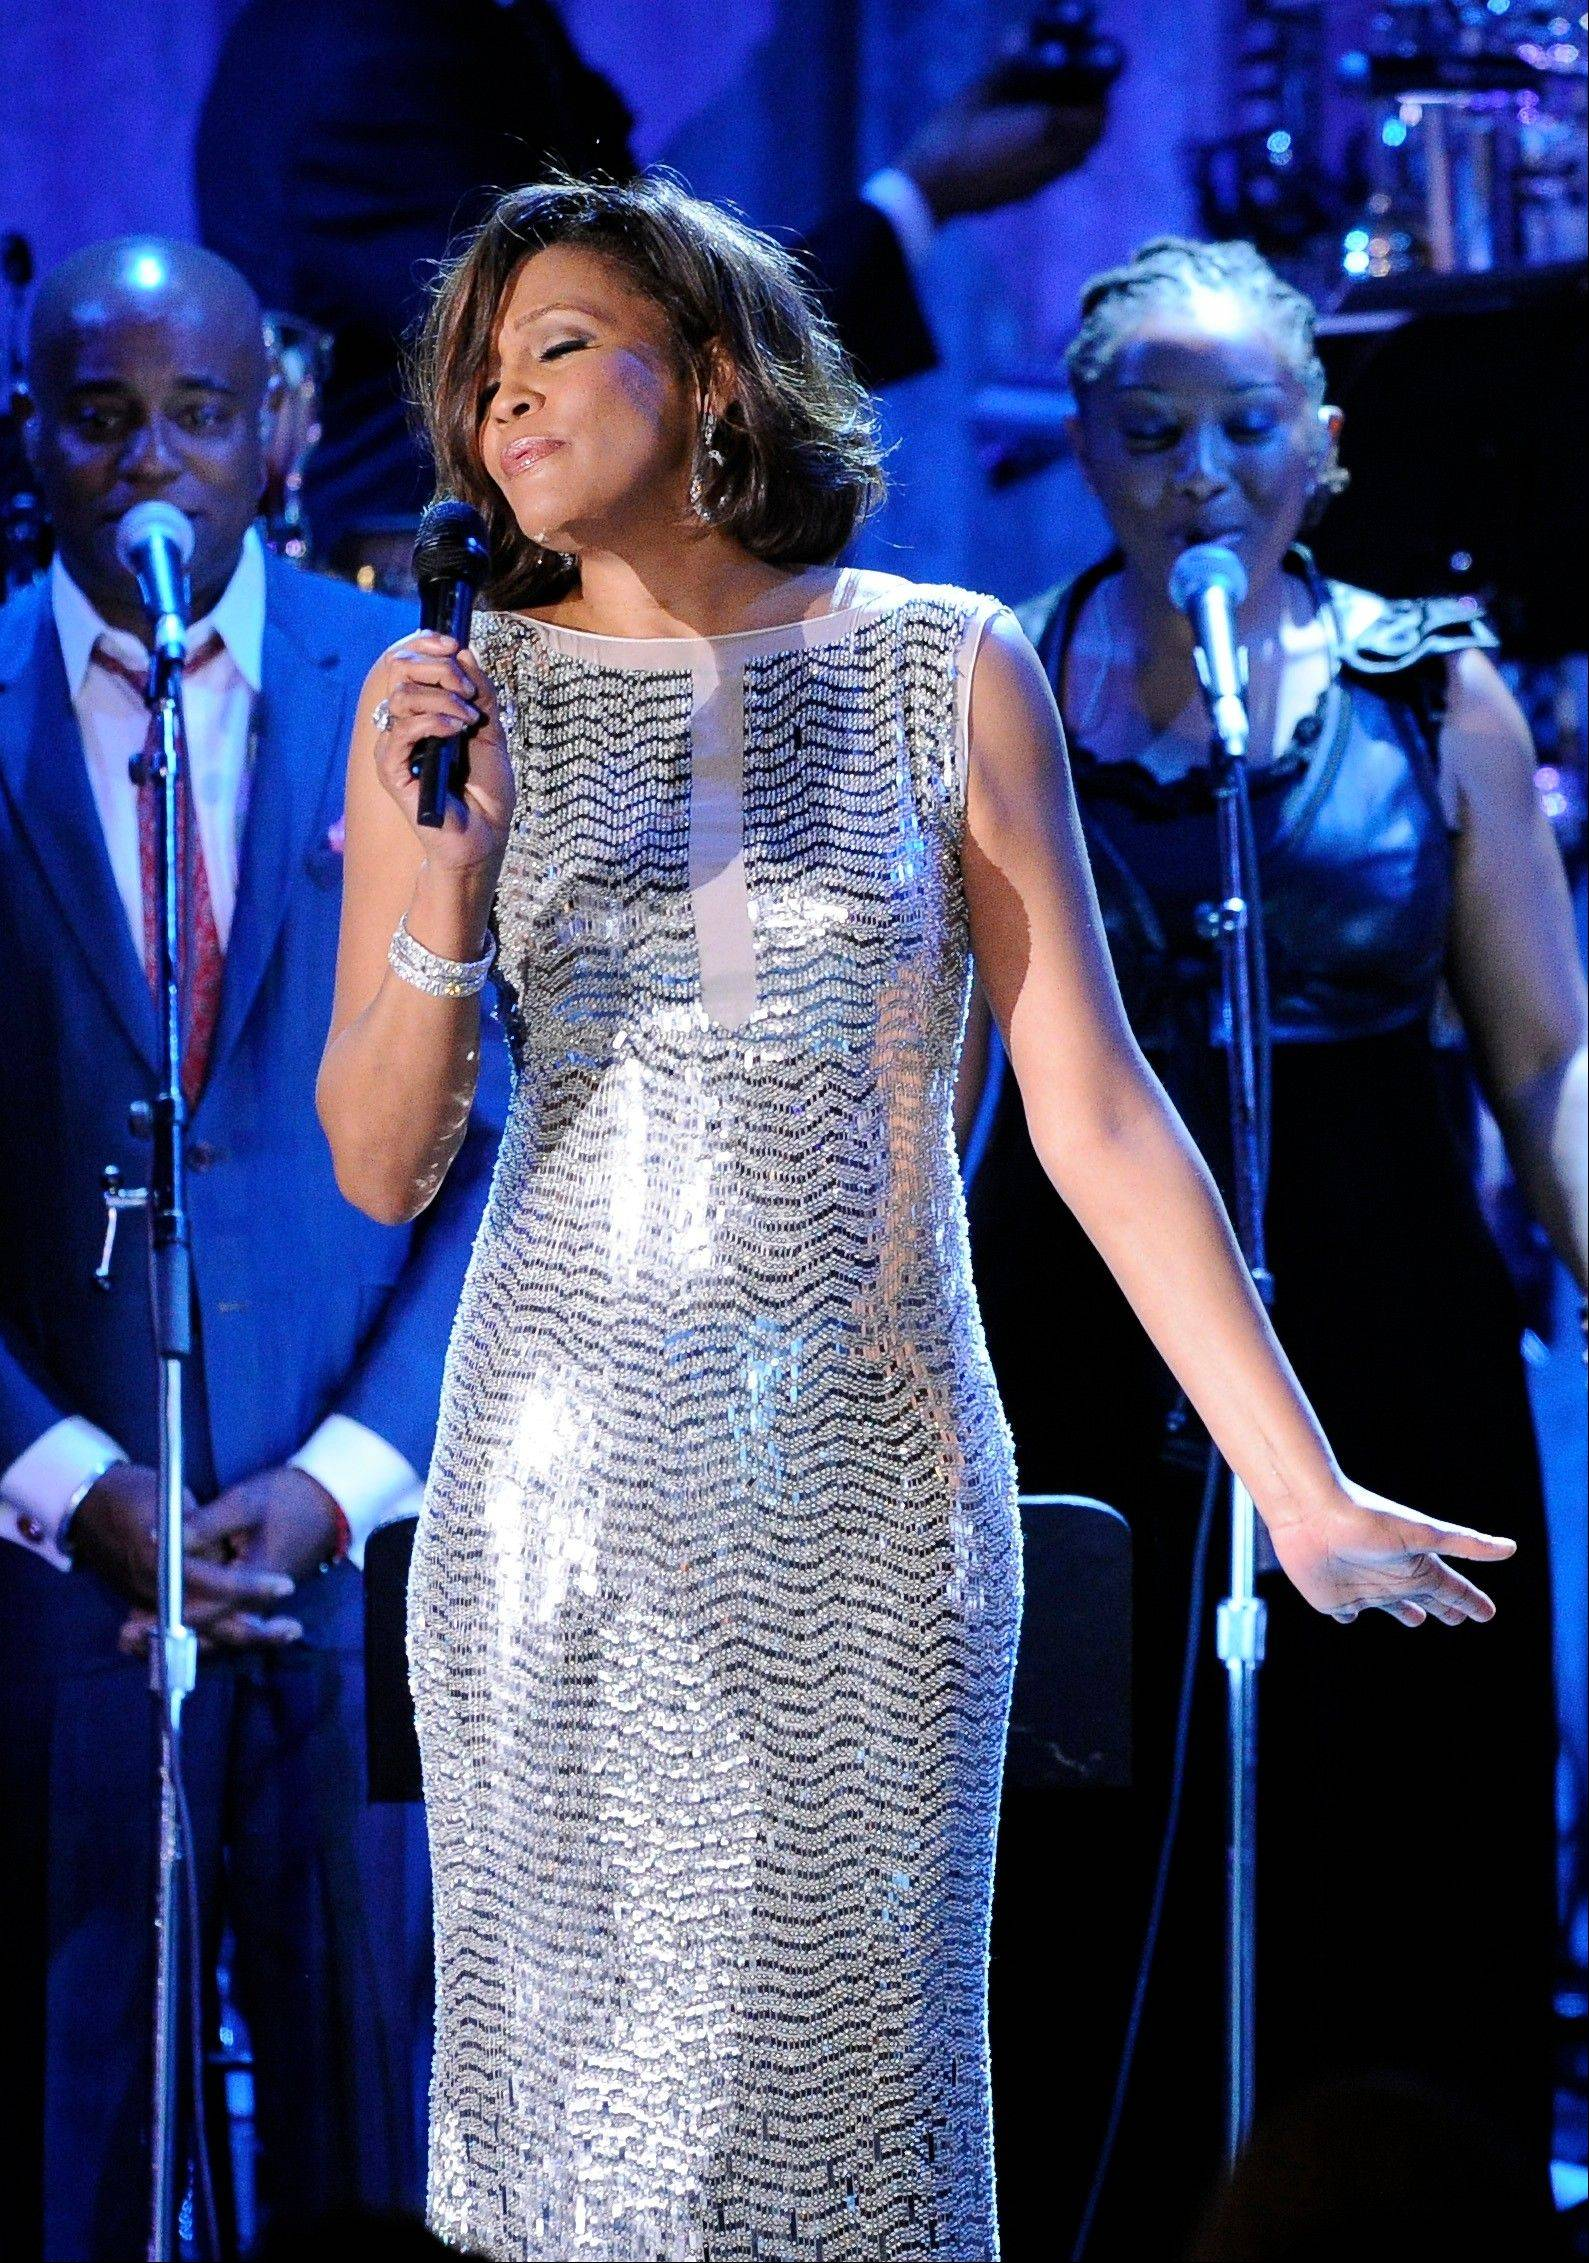 In this Feb. 13, 2011, file photo, singer Whitney Houston performs at the pre-Grammy gala & salute to industry icons with Clive Davis honoring David Geffen in Beverly Hills, Calif.